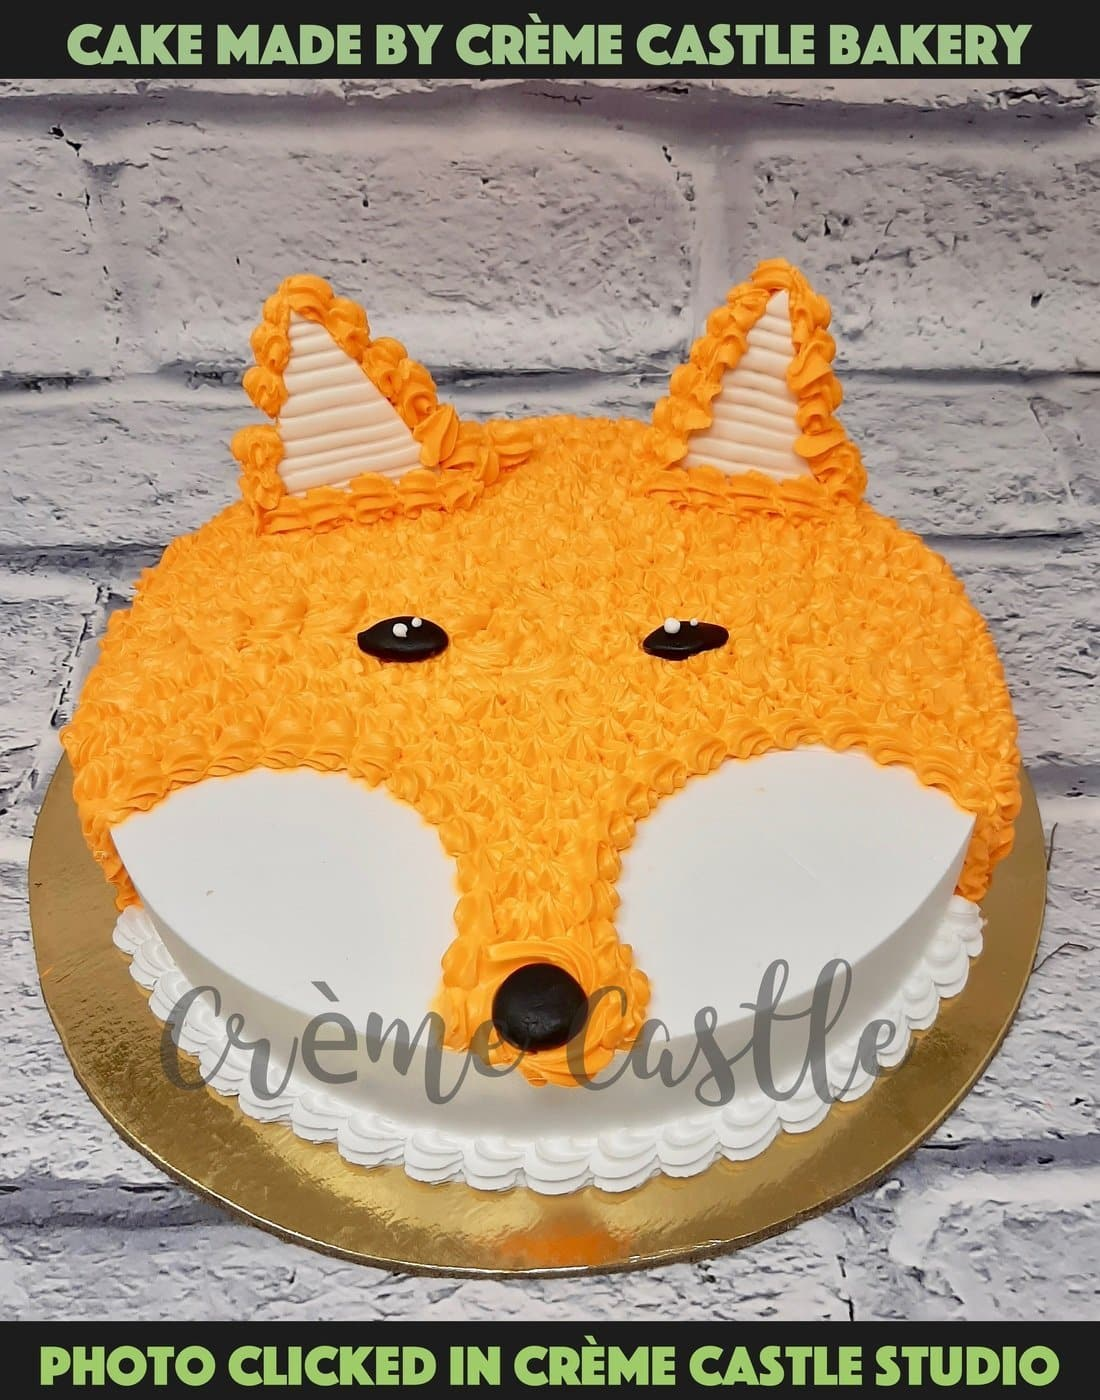 A cake in the form of the face of a dog in orange colour made from the cream and fondant made ears